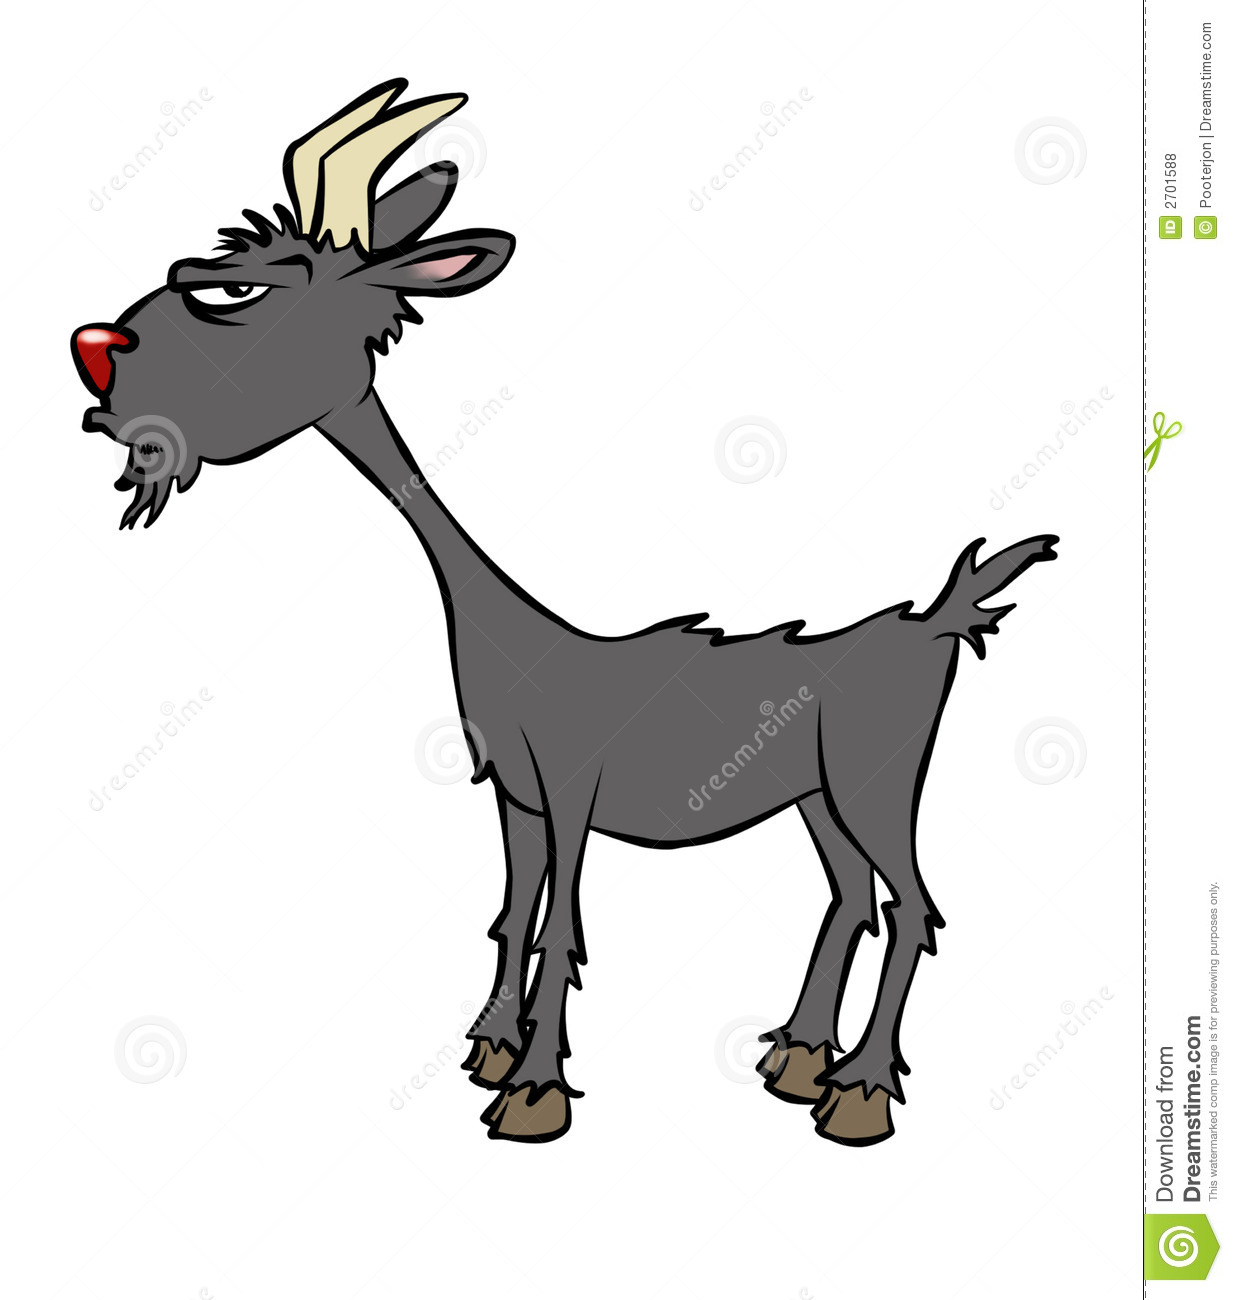 Billy Goat clipart #5, Download drawings